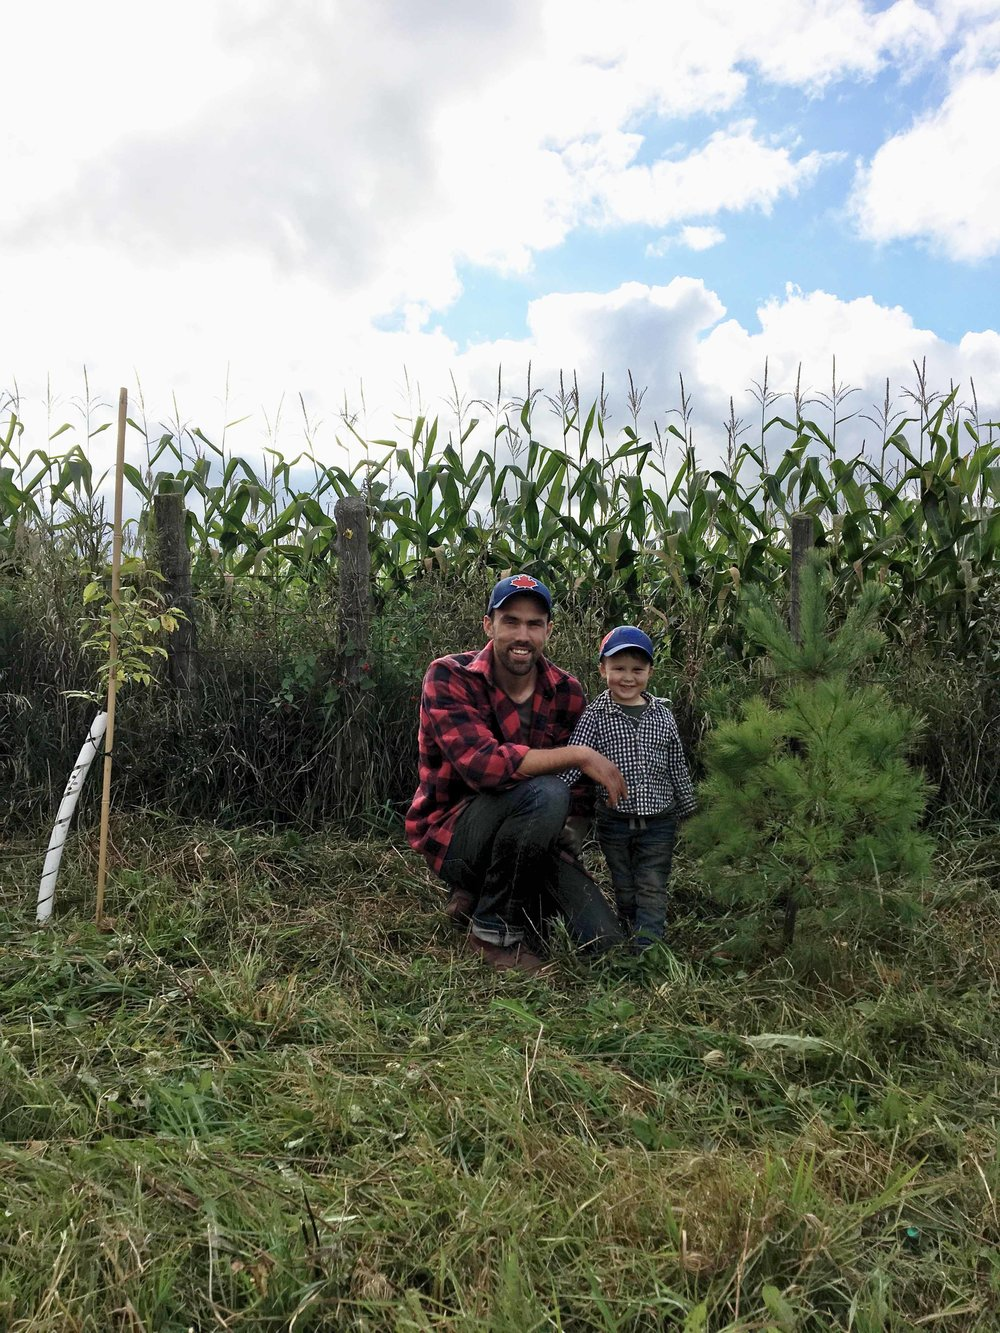 Patrick and Wyatt Kitchen in front of the new windbreak on  Sideroad Farms . The trees and vegetation will need to grow for several years before they mature and can act as a habitat.